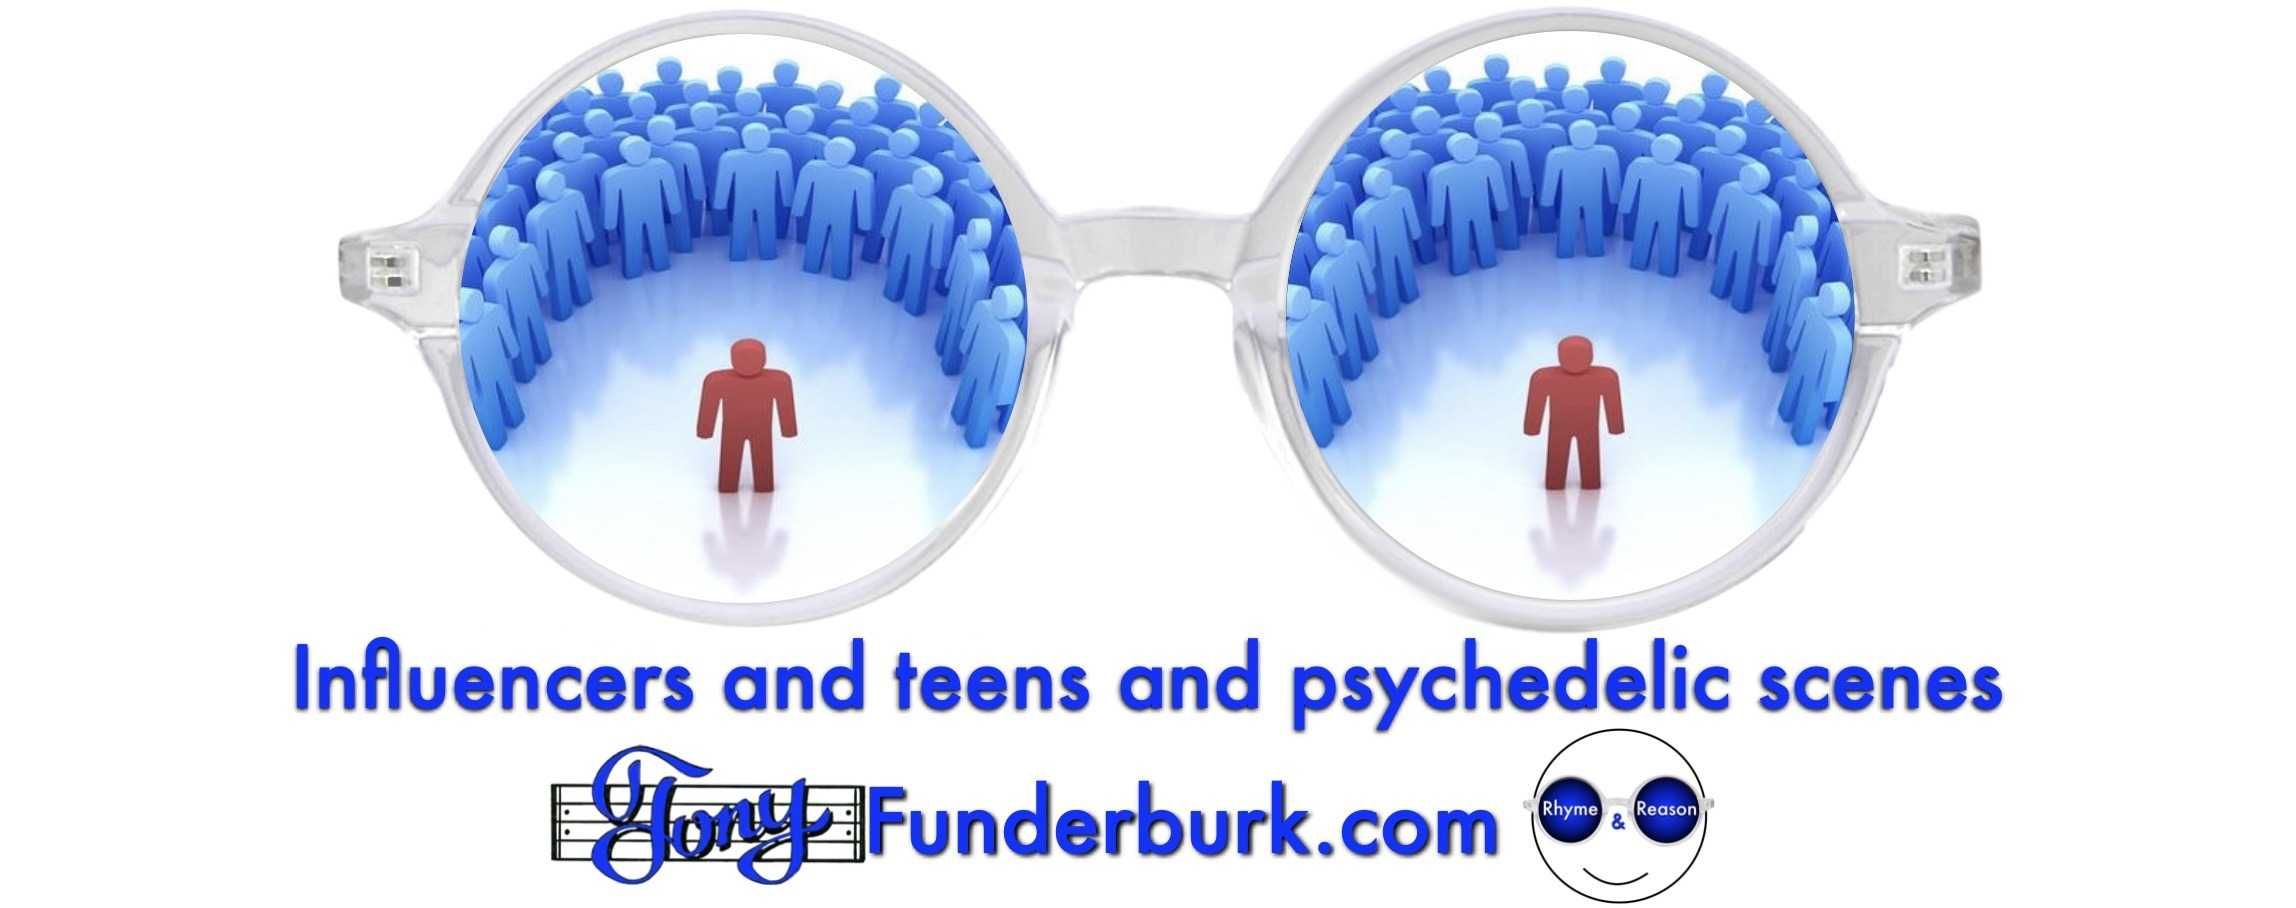 Influencers and teens and psychedelic scenes